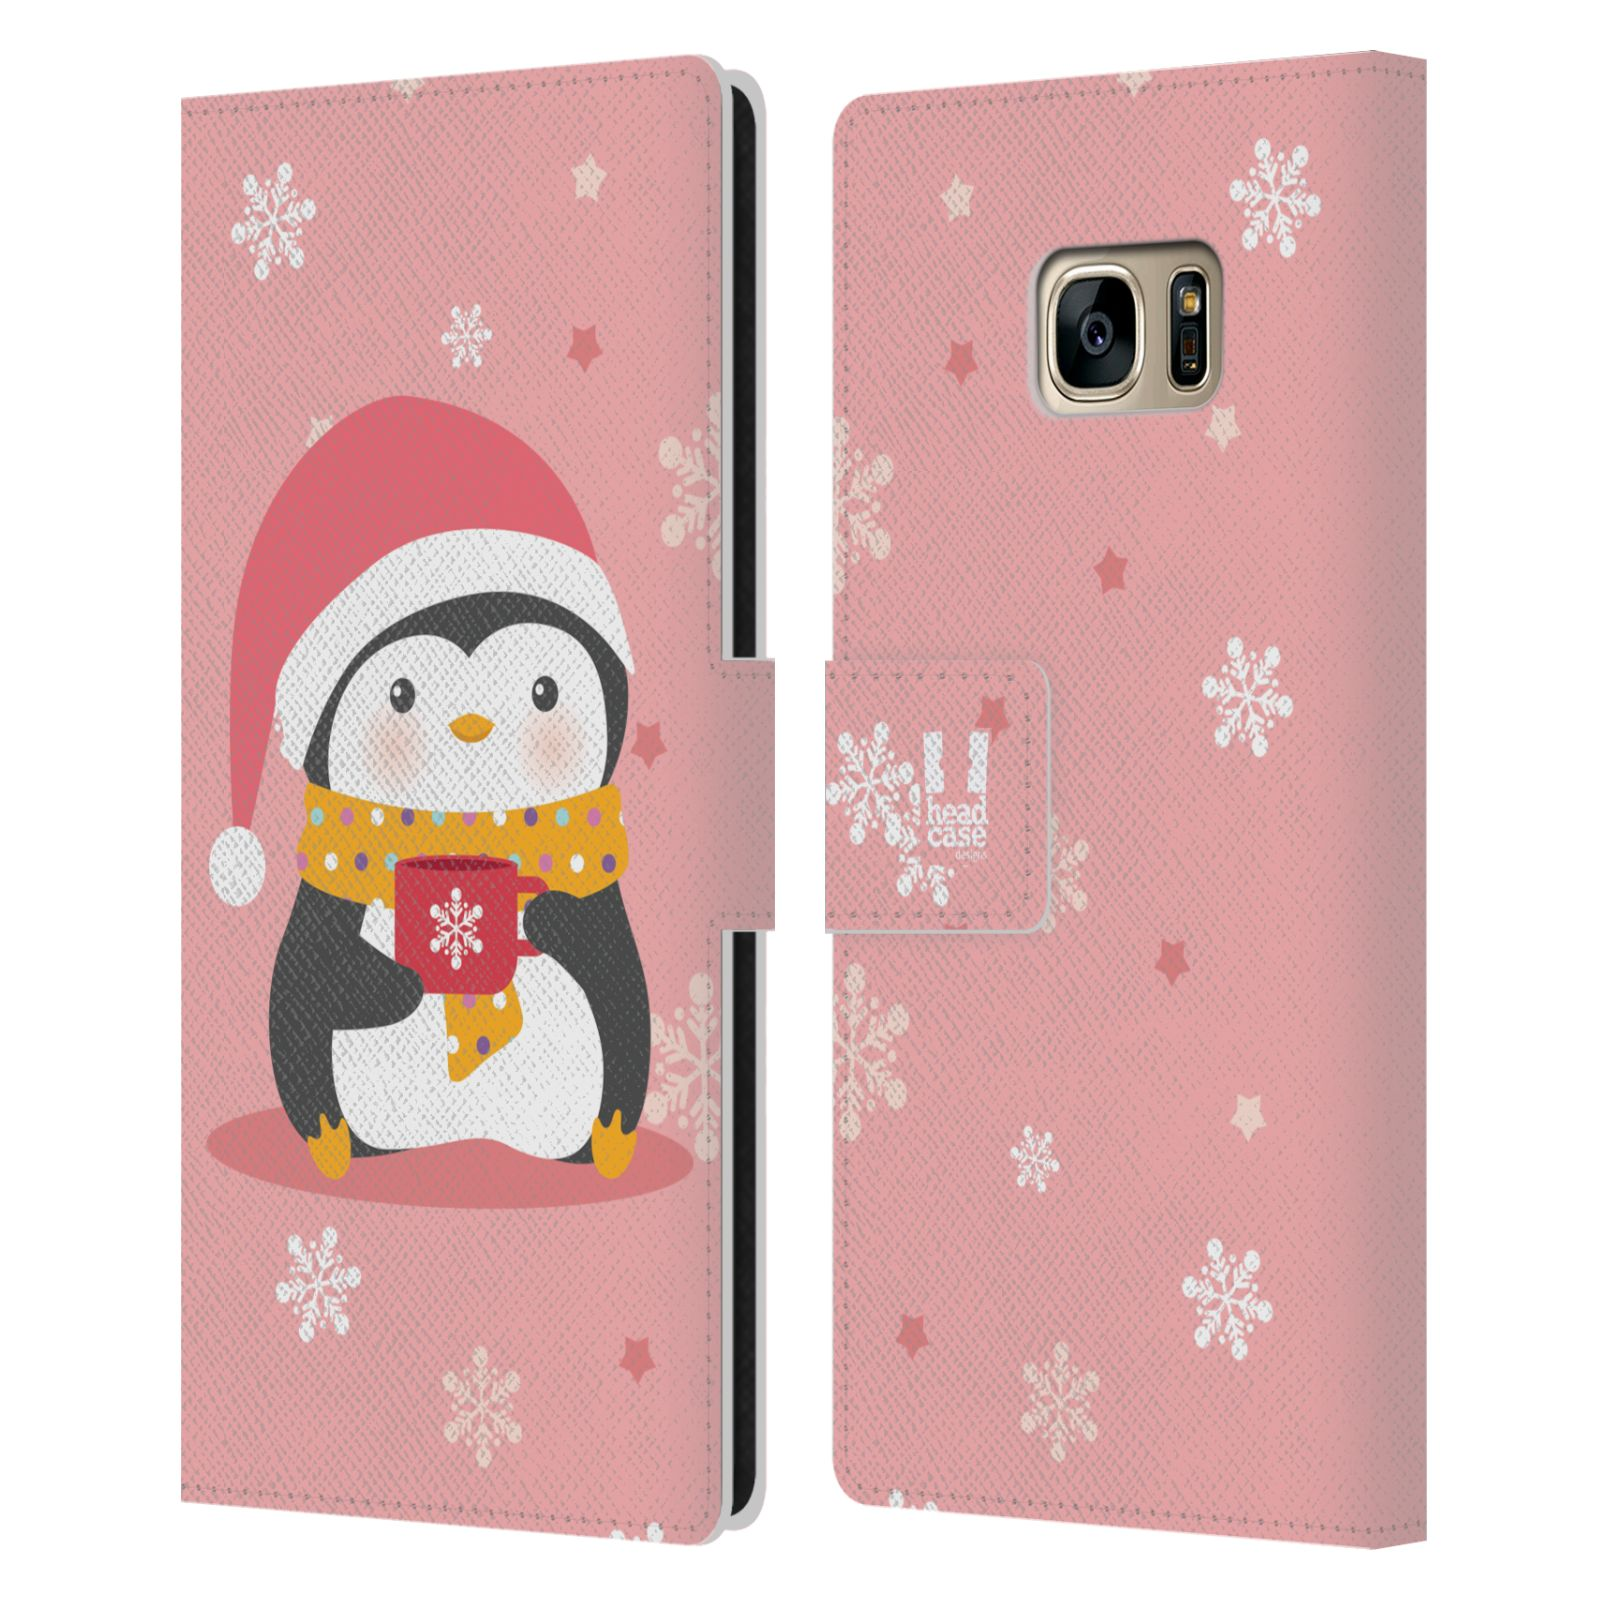 Penguin Book Phone Cover ~ Head case kawaii christmas penguins leather book for